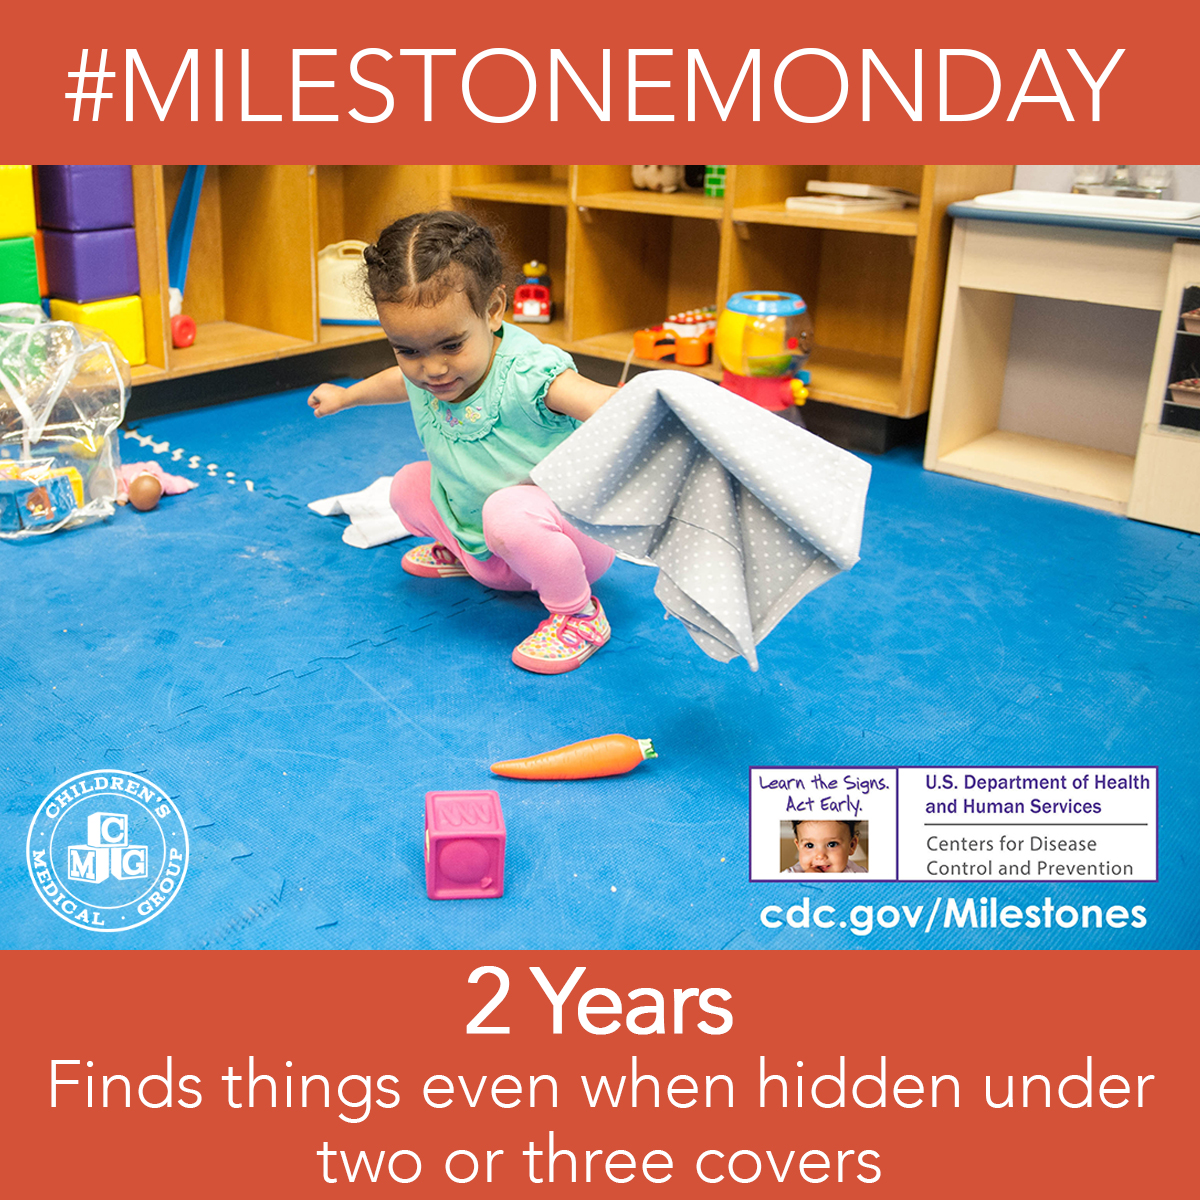 #MilestoneMonday At 2 years old your child will be able to find things when hidden under two or three covers. Get ready for a  ton of hide and seek sessions! #MilestoneMonday #ChildrensMedicalGroup #Pediatrician #DevelopmentalMilestones #ClintonMS #JacksonMS #MadisonMSpic.twitter.com/gjayrUoR4z